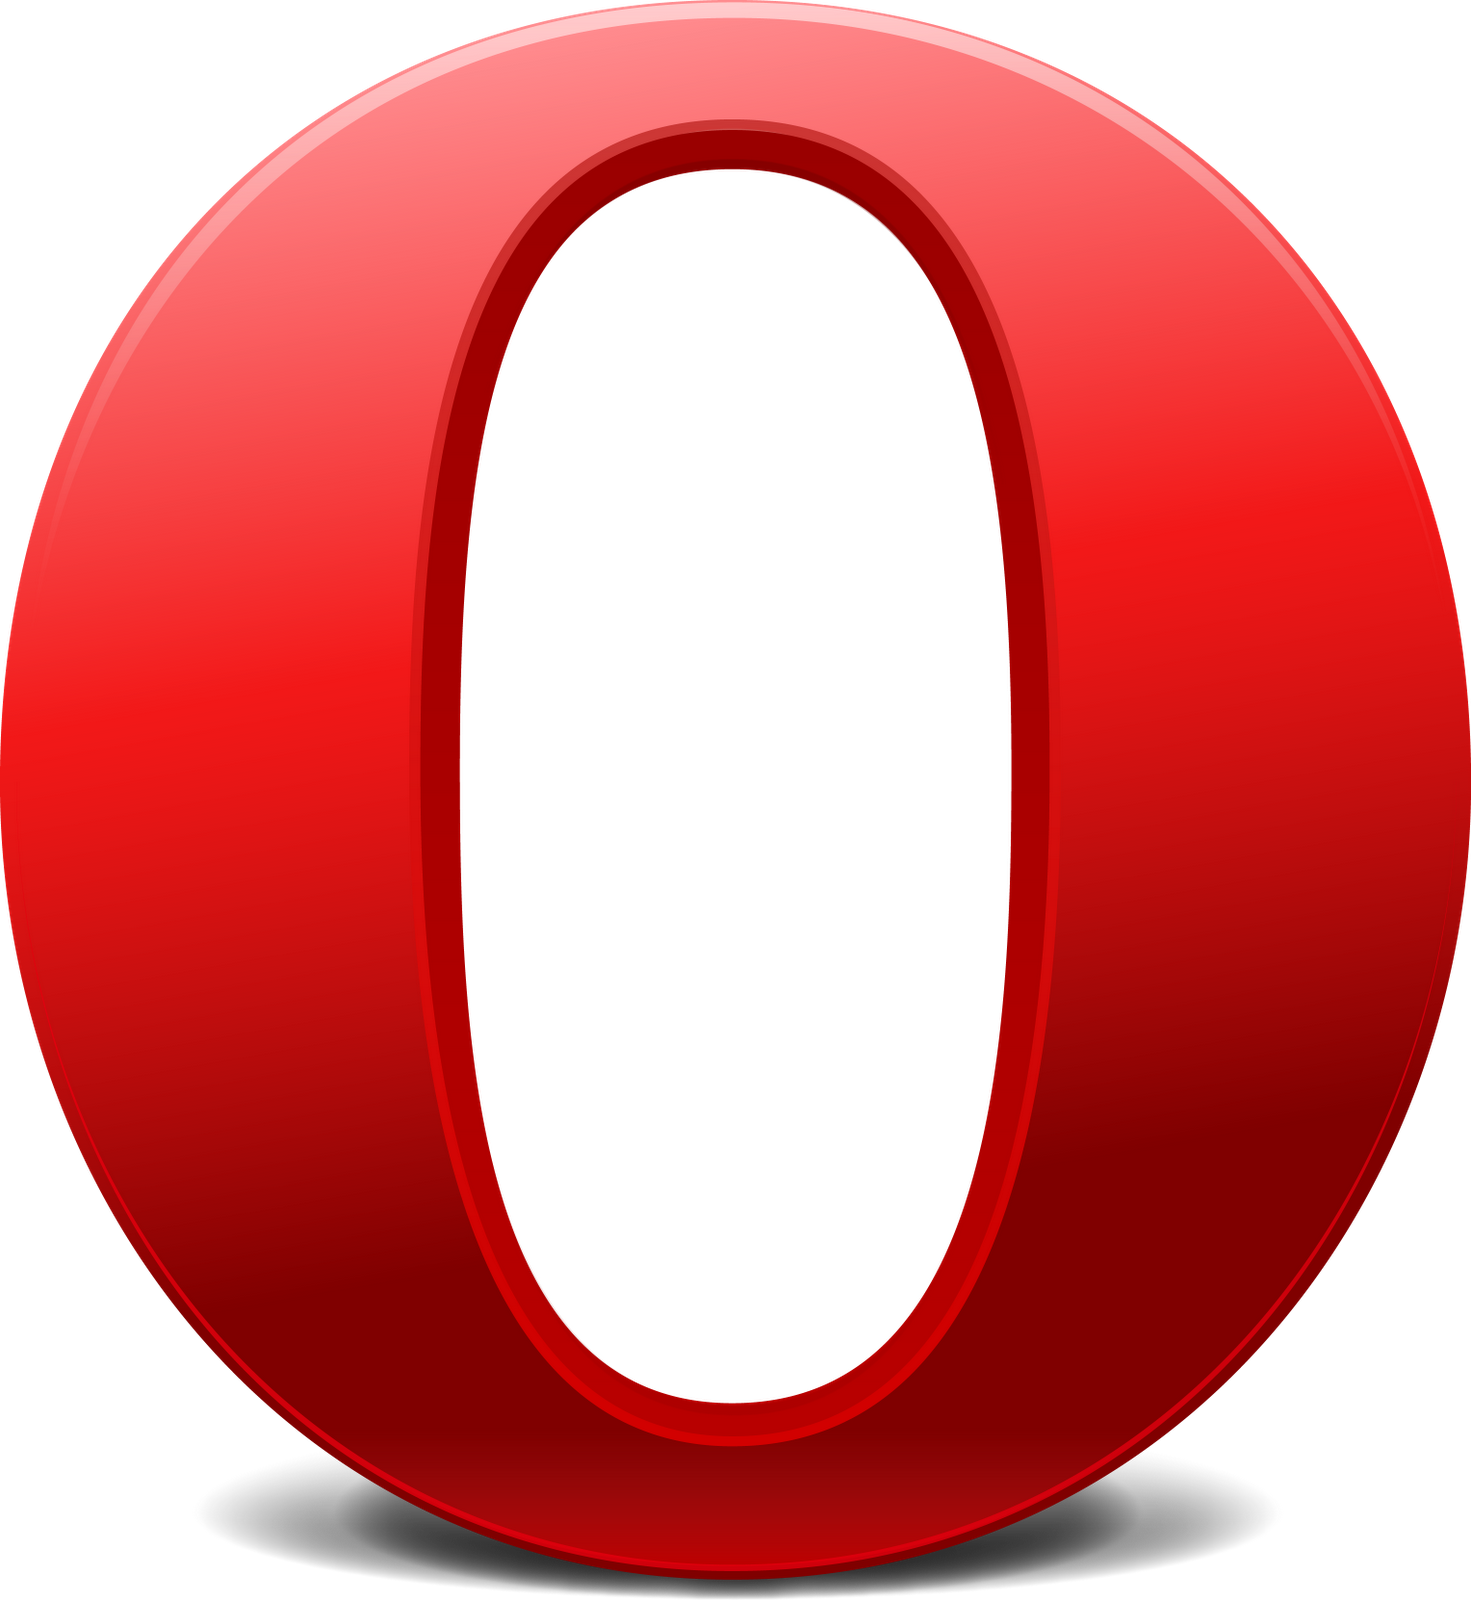 8 Opera Browser Icon Images